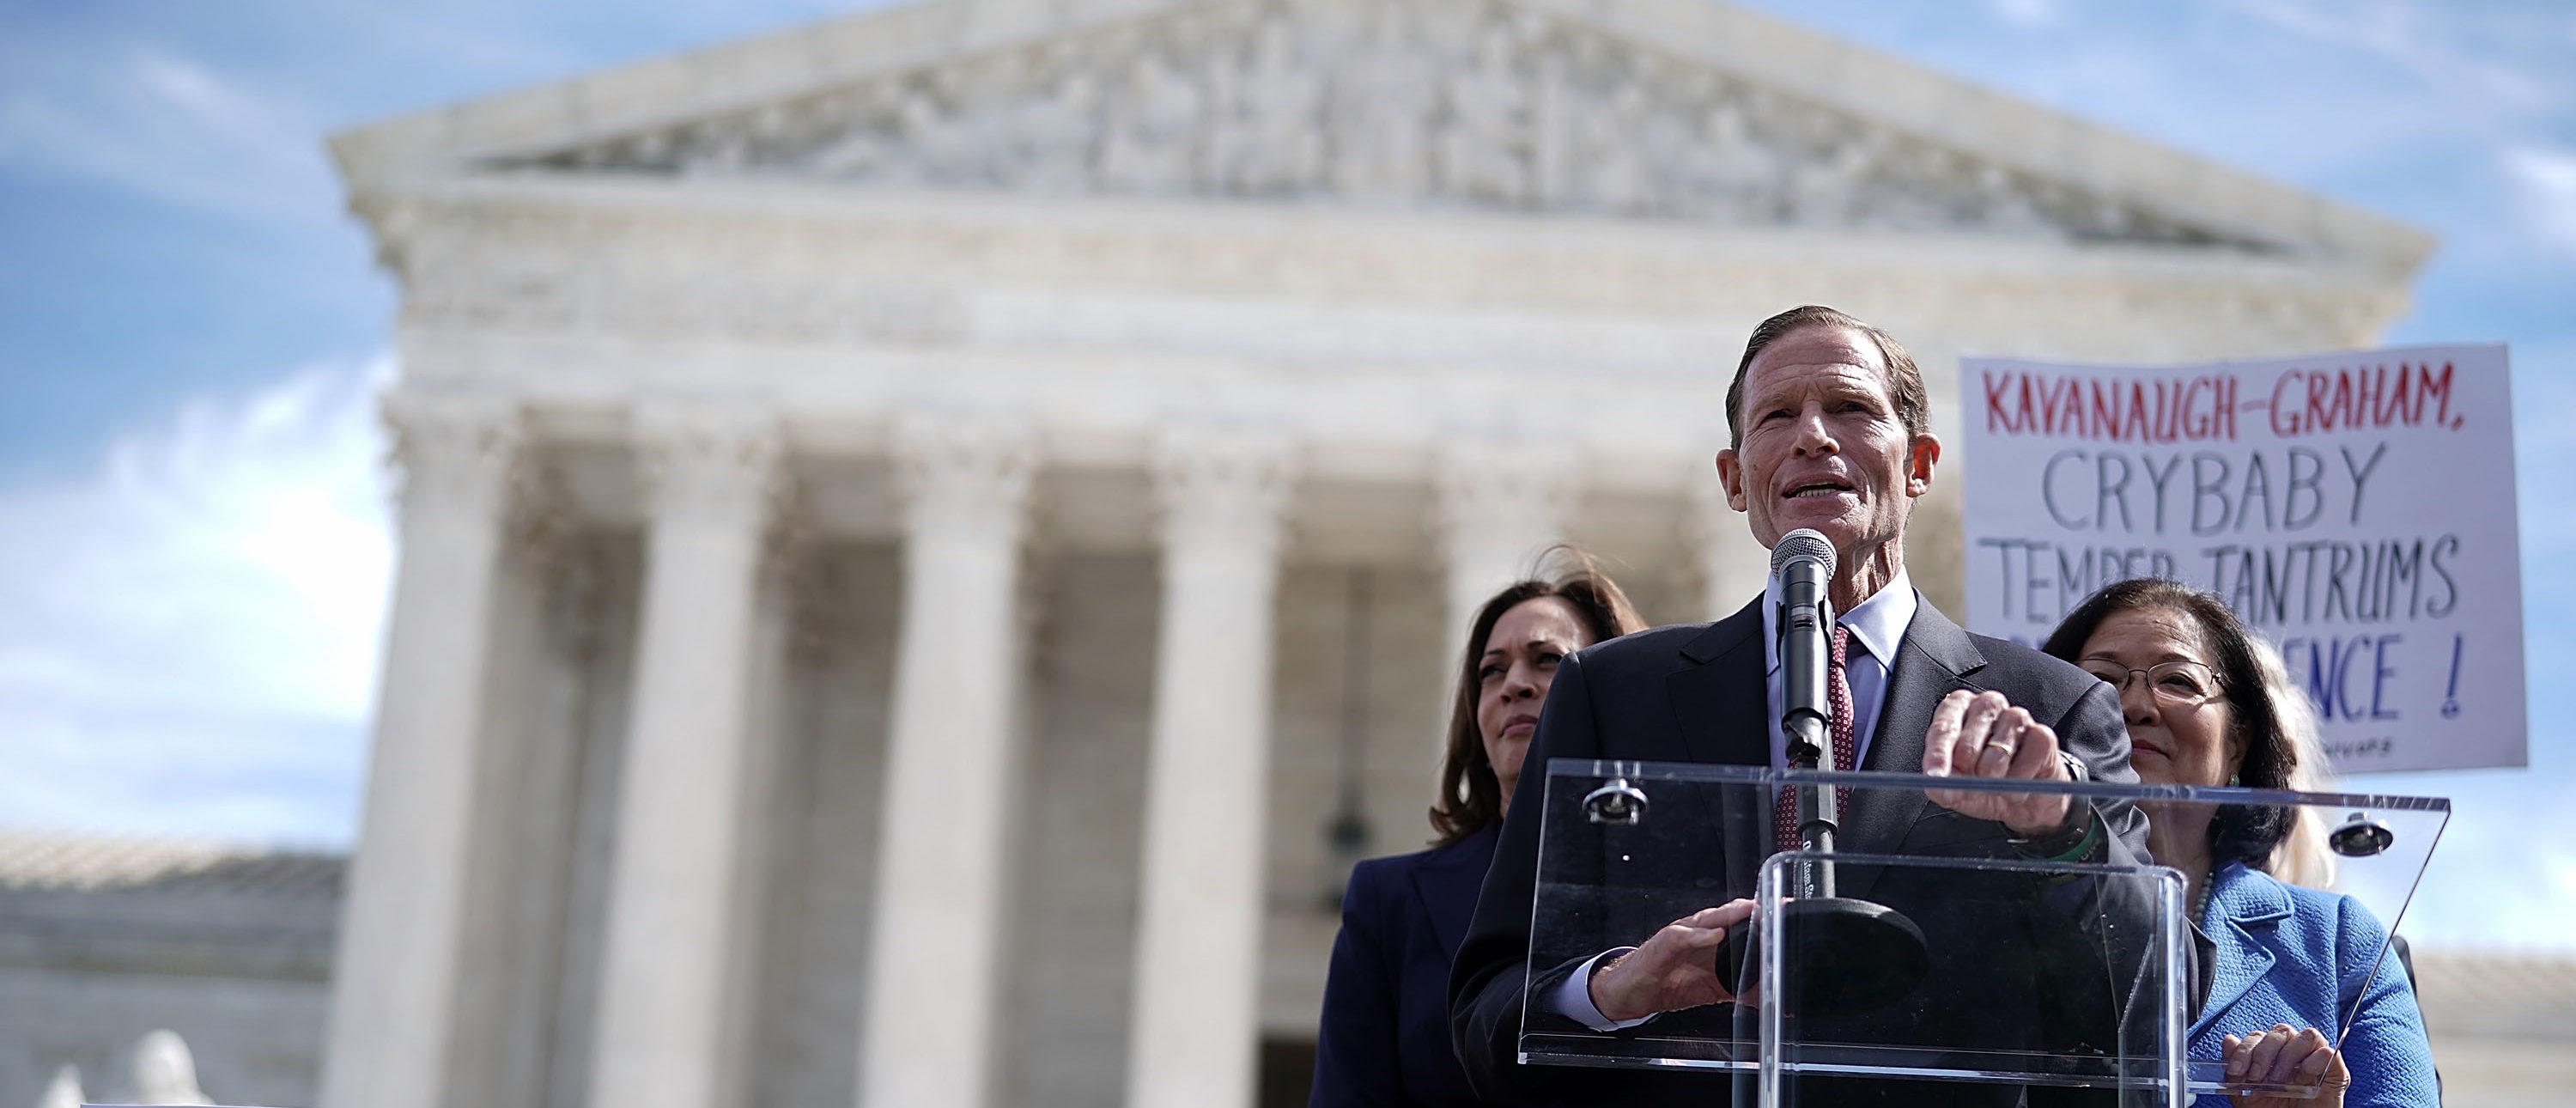 WASHINGTON, DC - SEPTEMBER 28: Sen. Richard Blumenthal (D-CT) (2nd L) speaks as Sen. Mazie Hirono (D-HI) (R) and Sen. Kamala Harris (D-CA) (L) listen during a rally in front of the U.S. Supreme Court September 28, 2018 in Washington, DC. Activists staged a rally to call to drop the nomination of Judge Brett Kavanaugh to the U.S. Supreme Court. (Photo by Alex Wong/Getty Images)